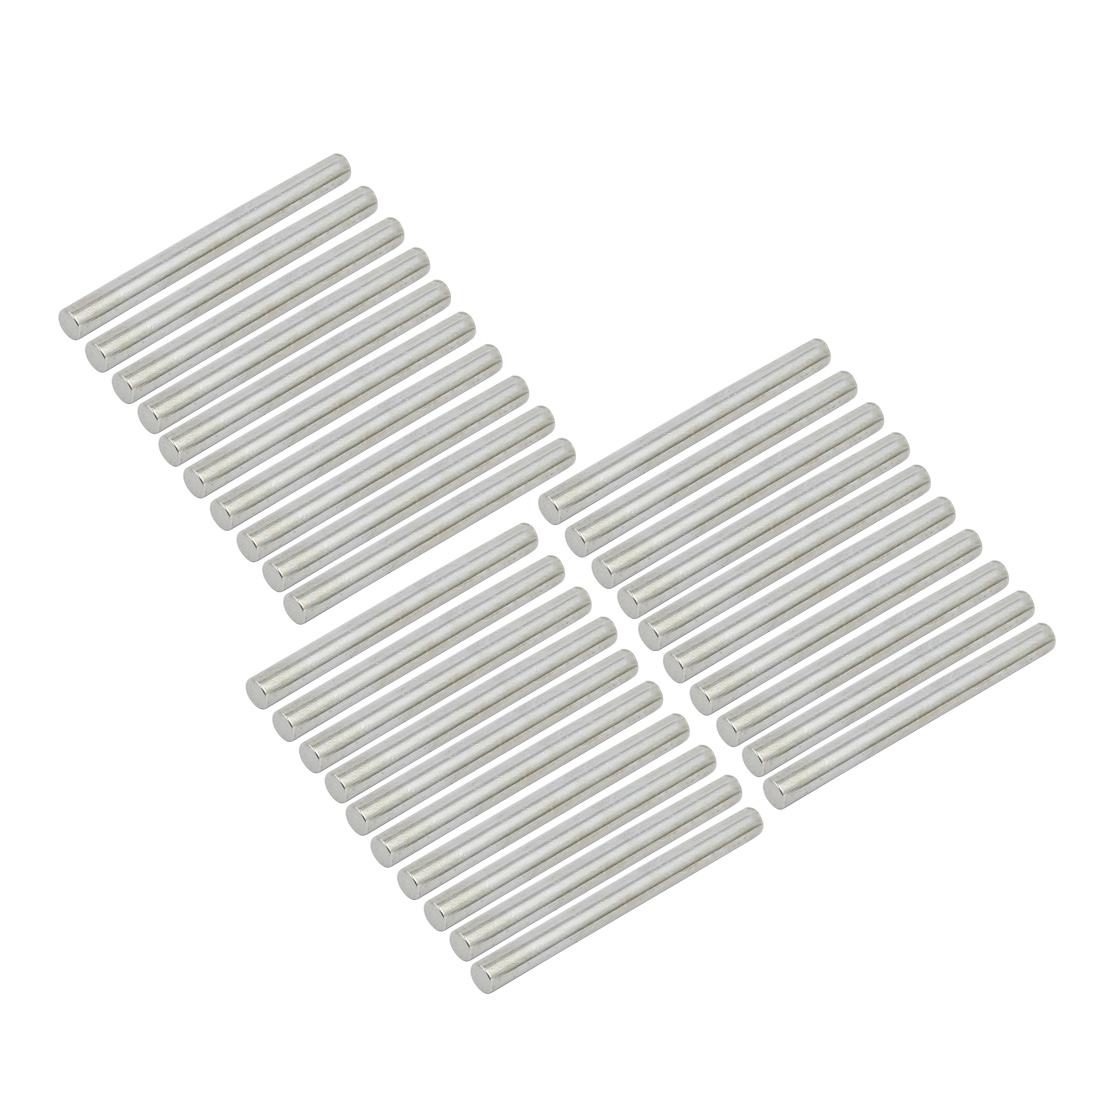 30Pcs Round Shaft Solid Steel Rods Axles 3mm x 34mm Silver Tone